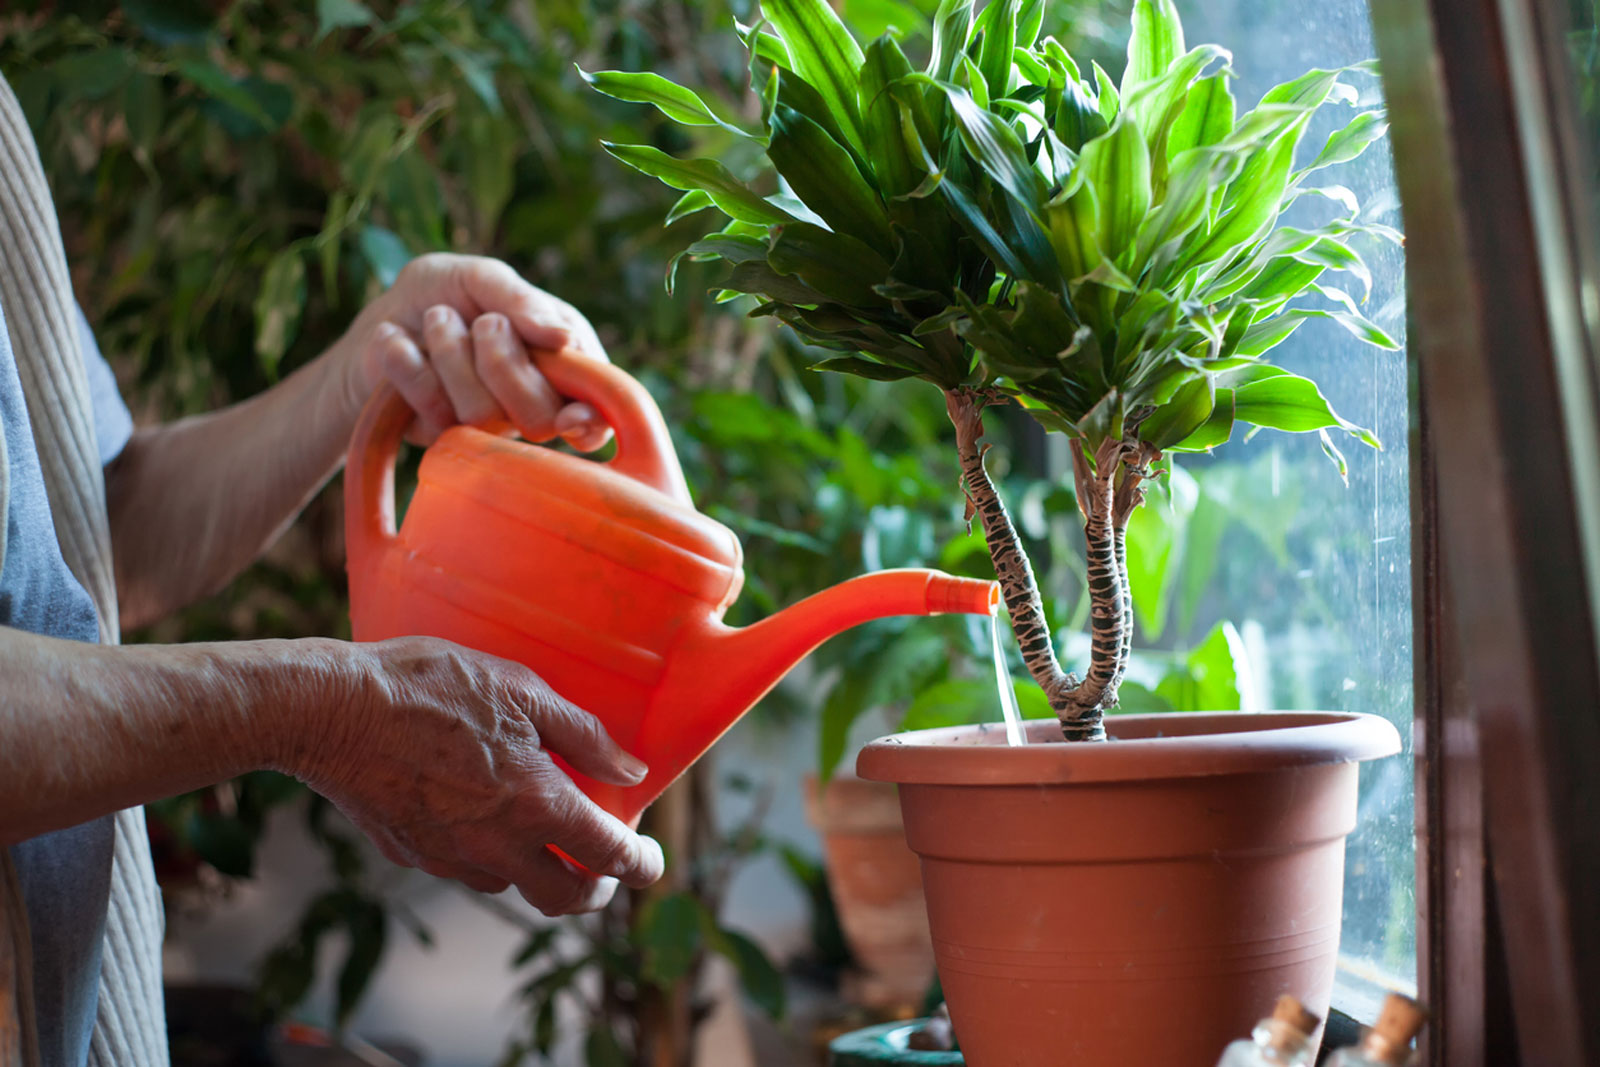 How To Water A Houseplant – Learn The Basics Of Watering A Houseplant